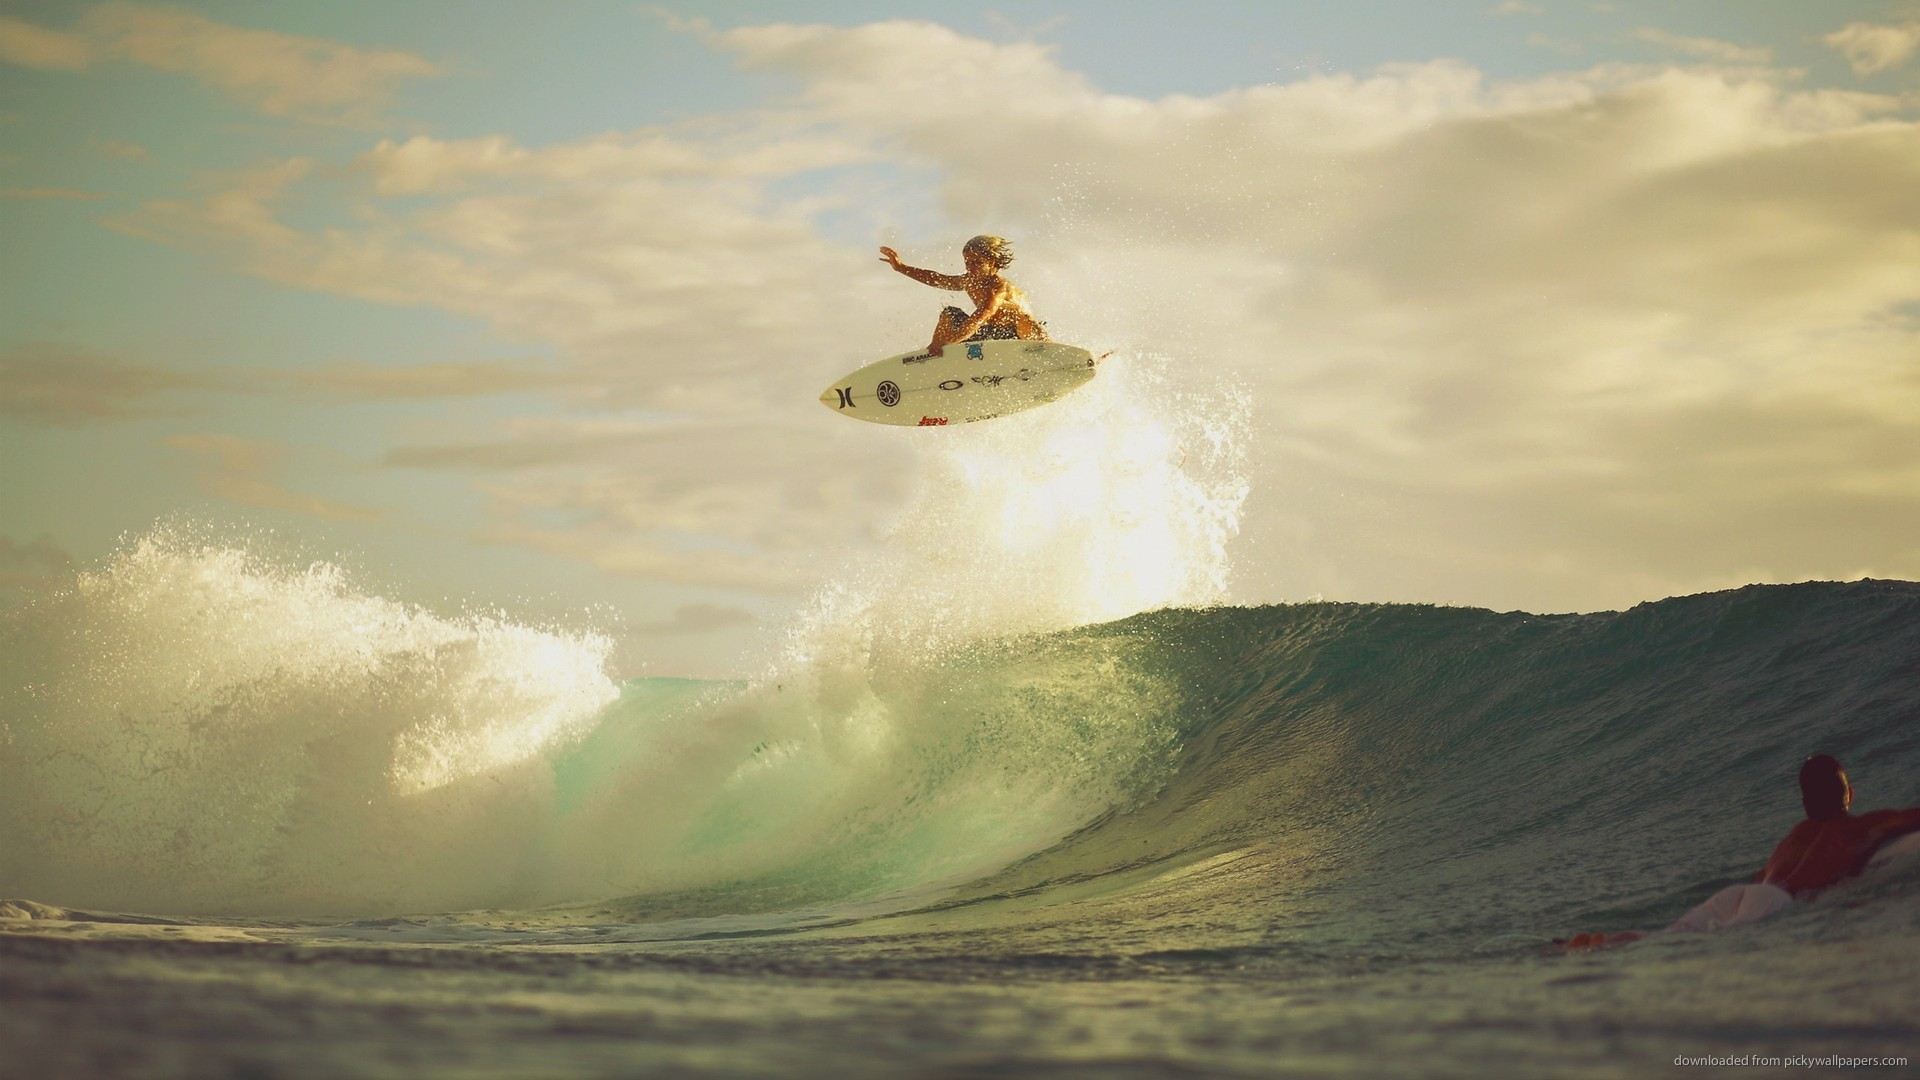 Surfing jump picture